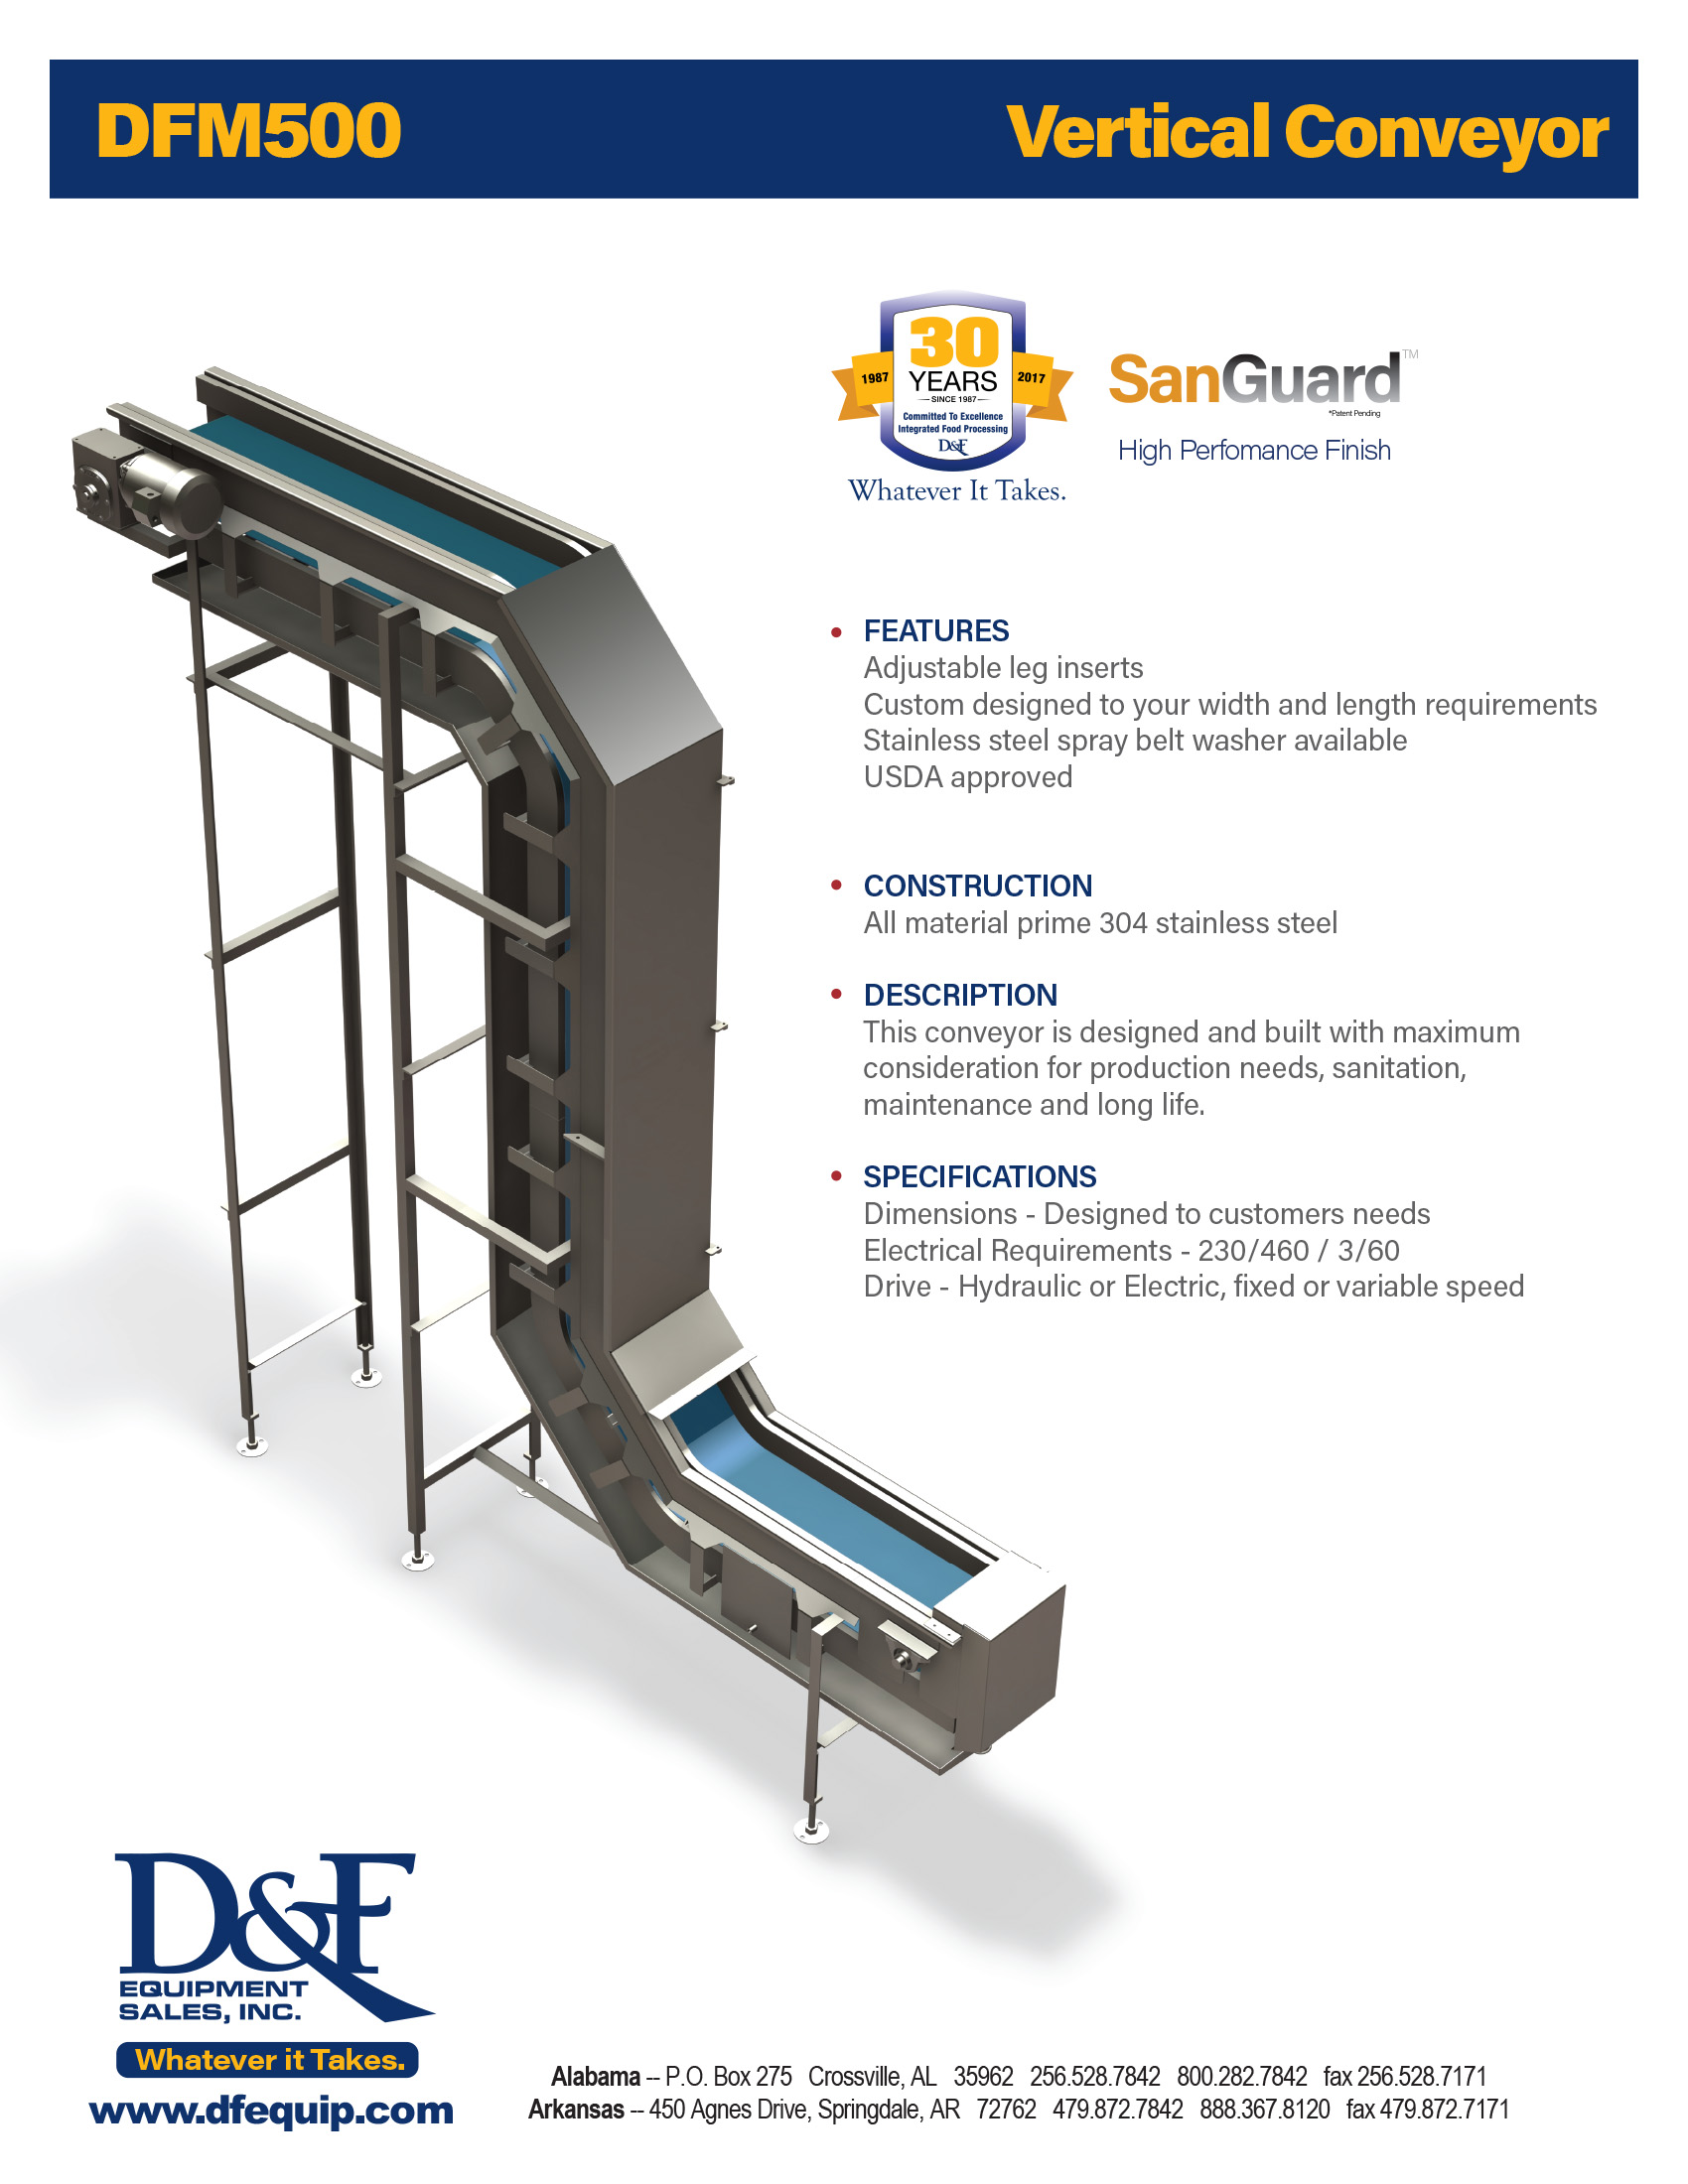 DFM500-VerticalConveyor2017.jpg